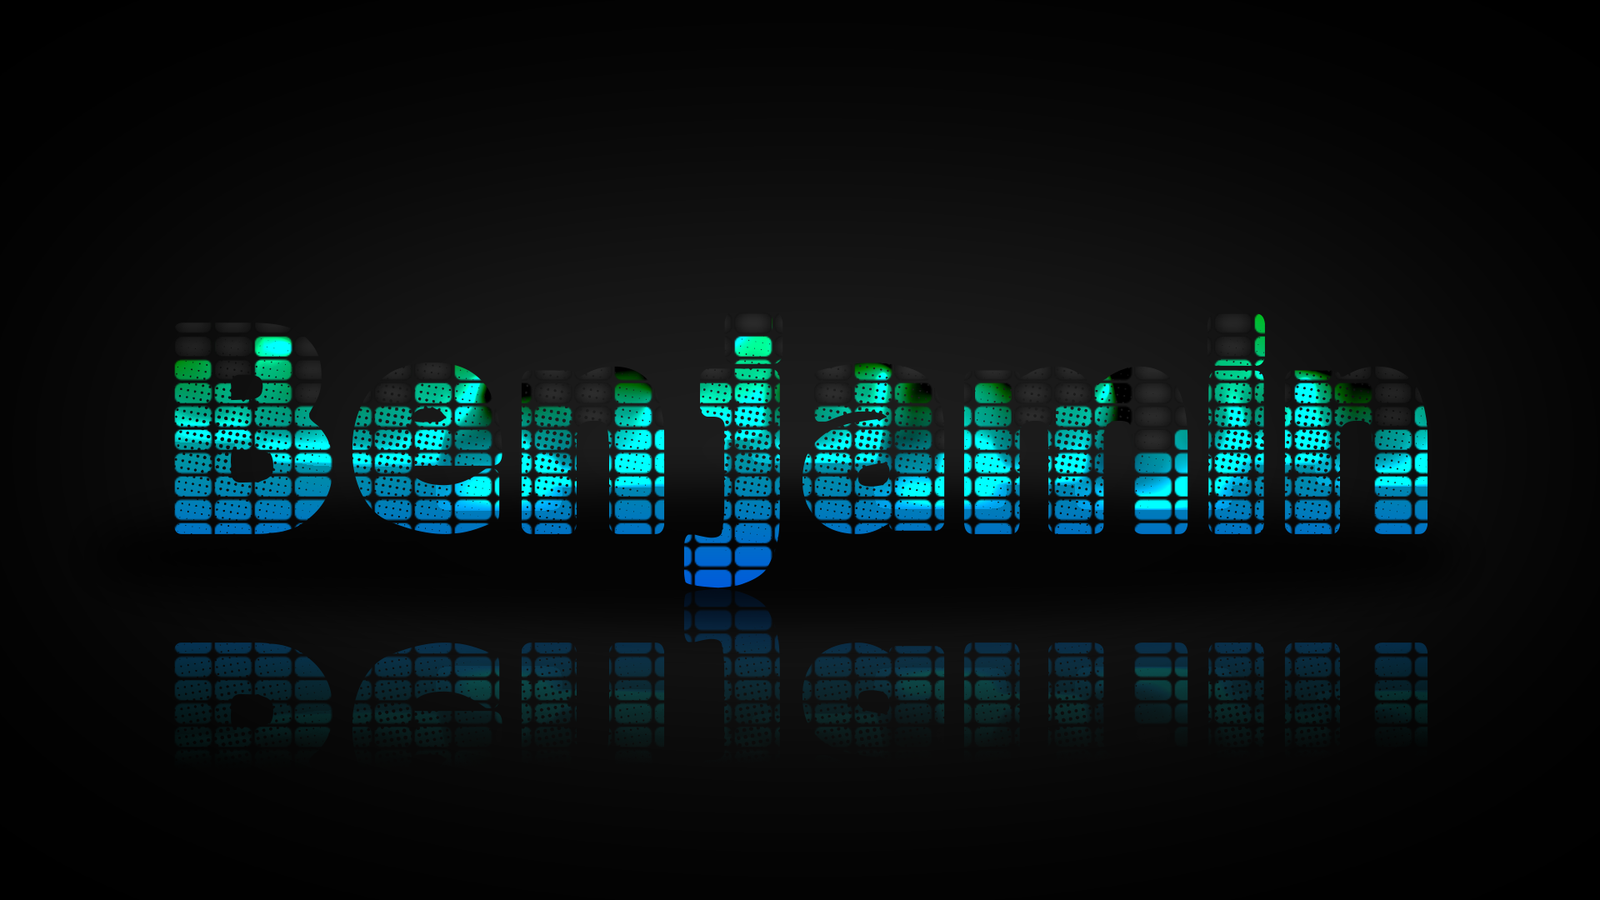 Music Equalizer Wallpaper: Equalizer Wallpaper That Moves